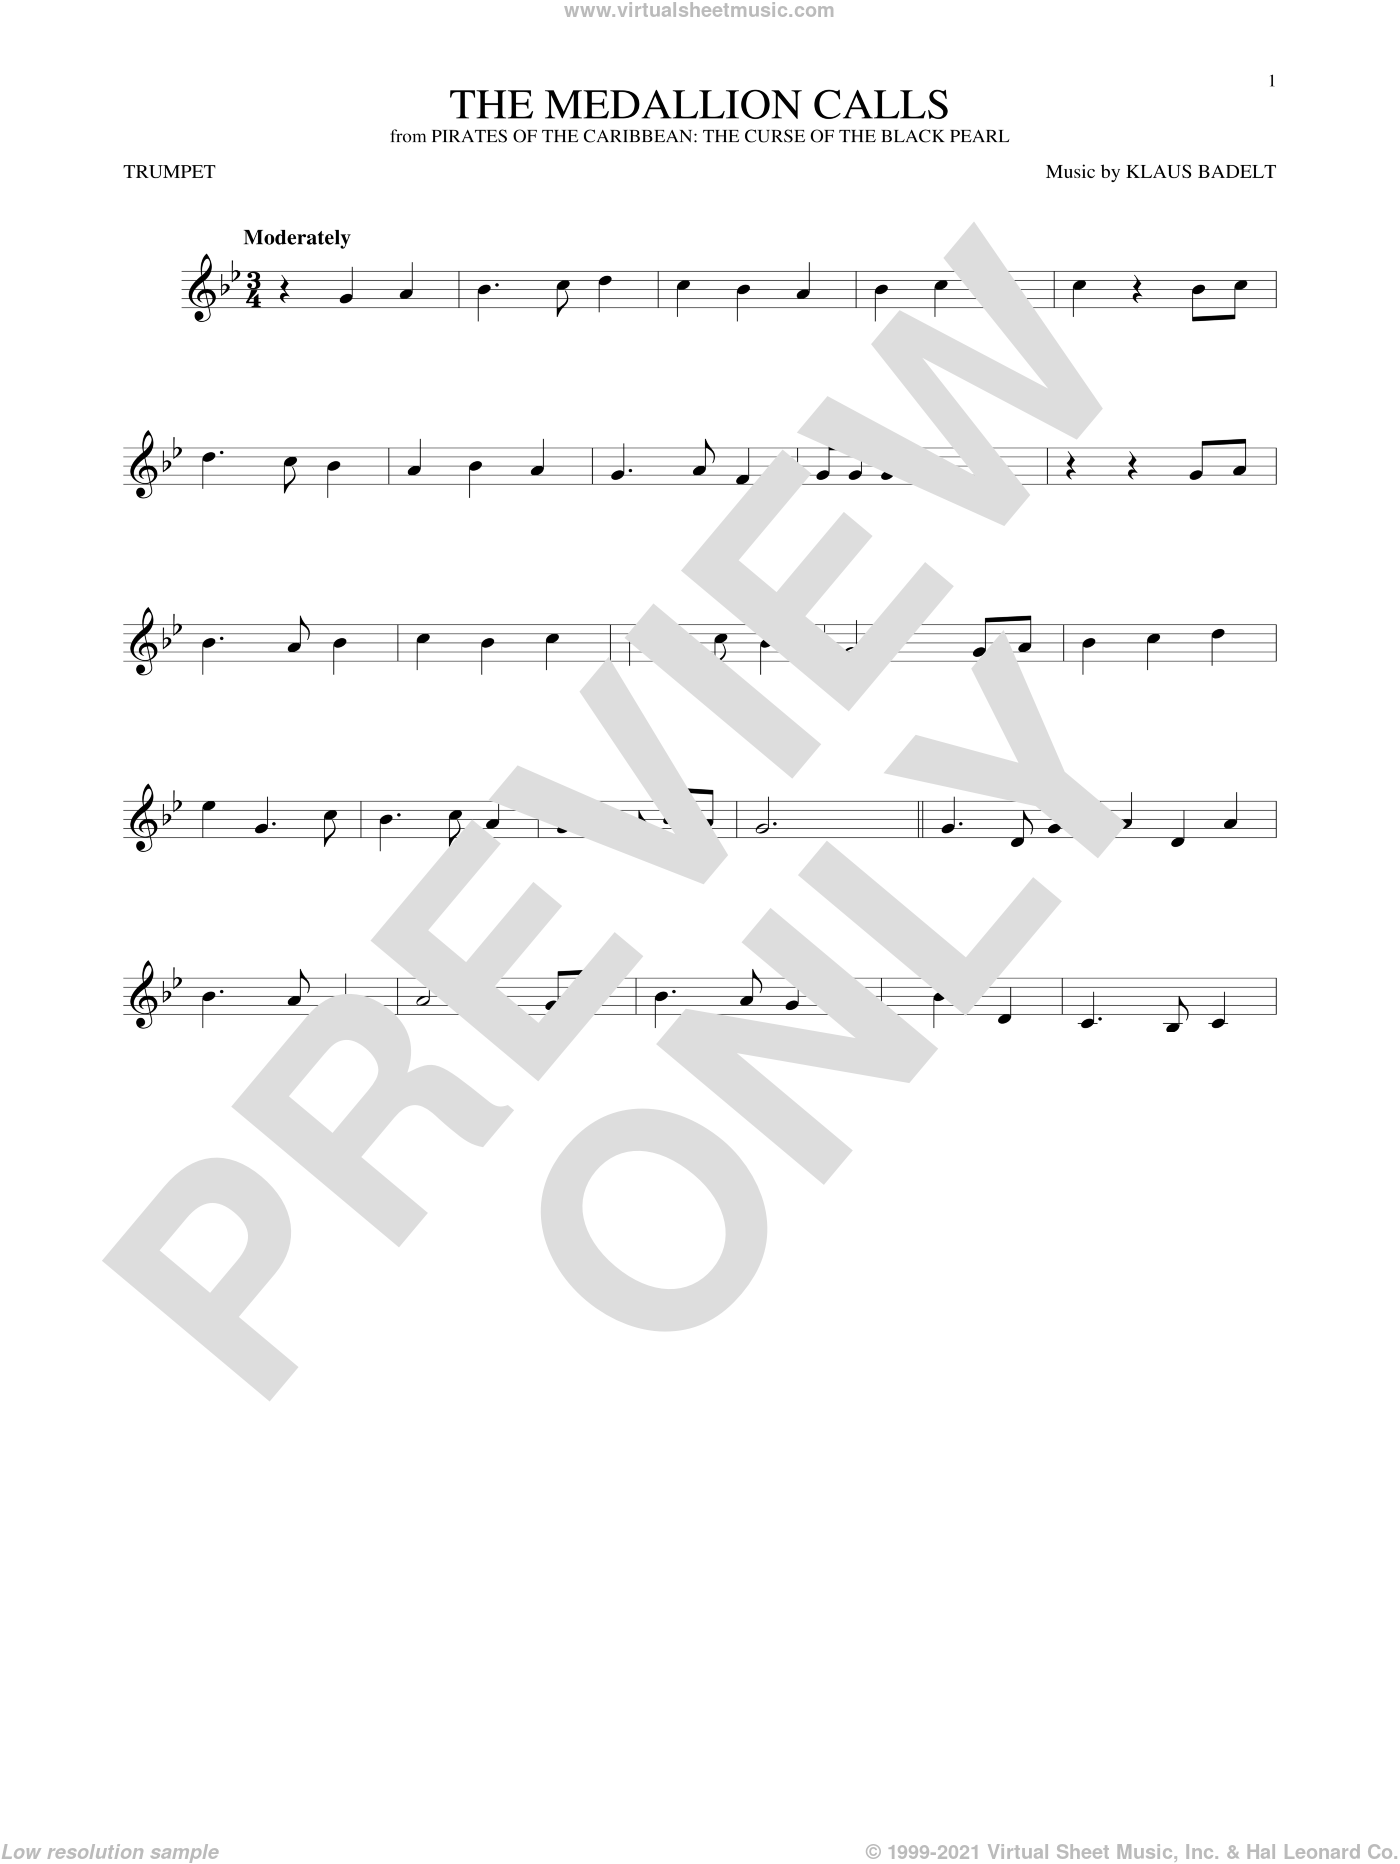 The Medallion Calls sheet music for trumpet solo by Klaus Badelt, classical score, intermediate skill level